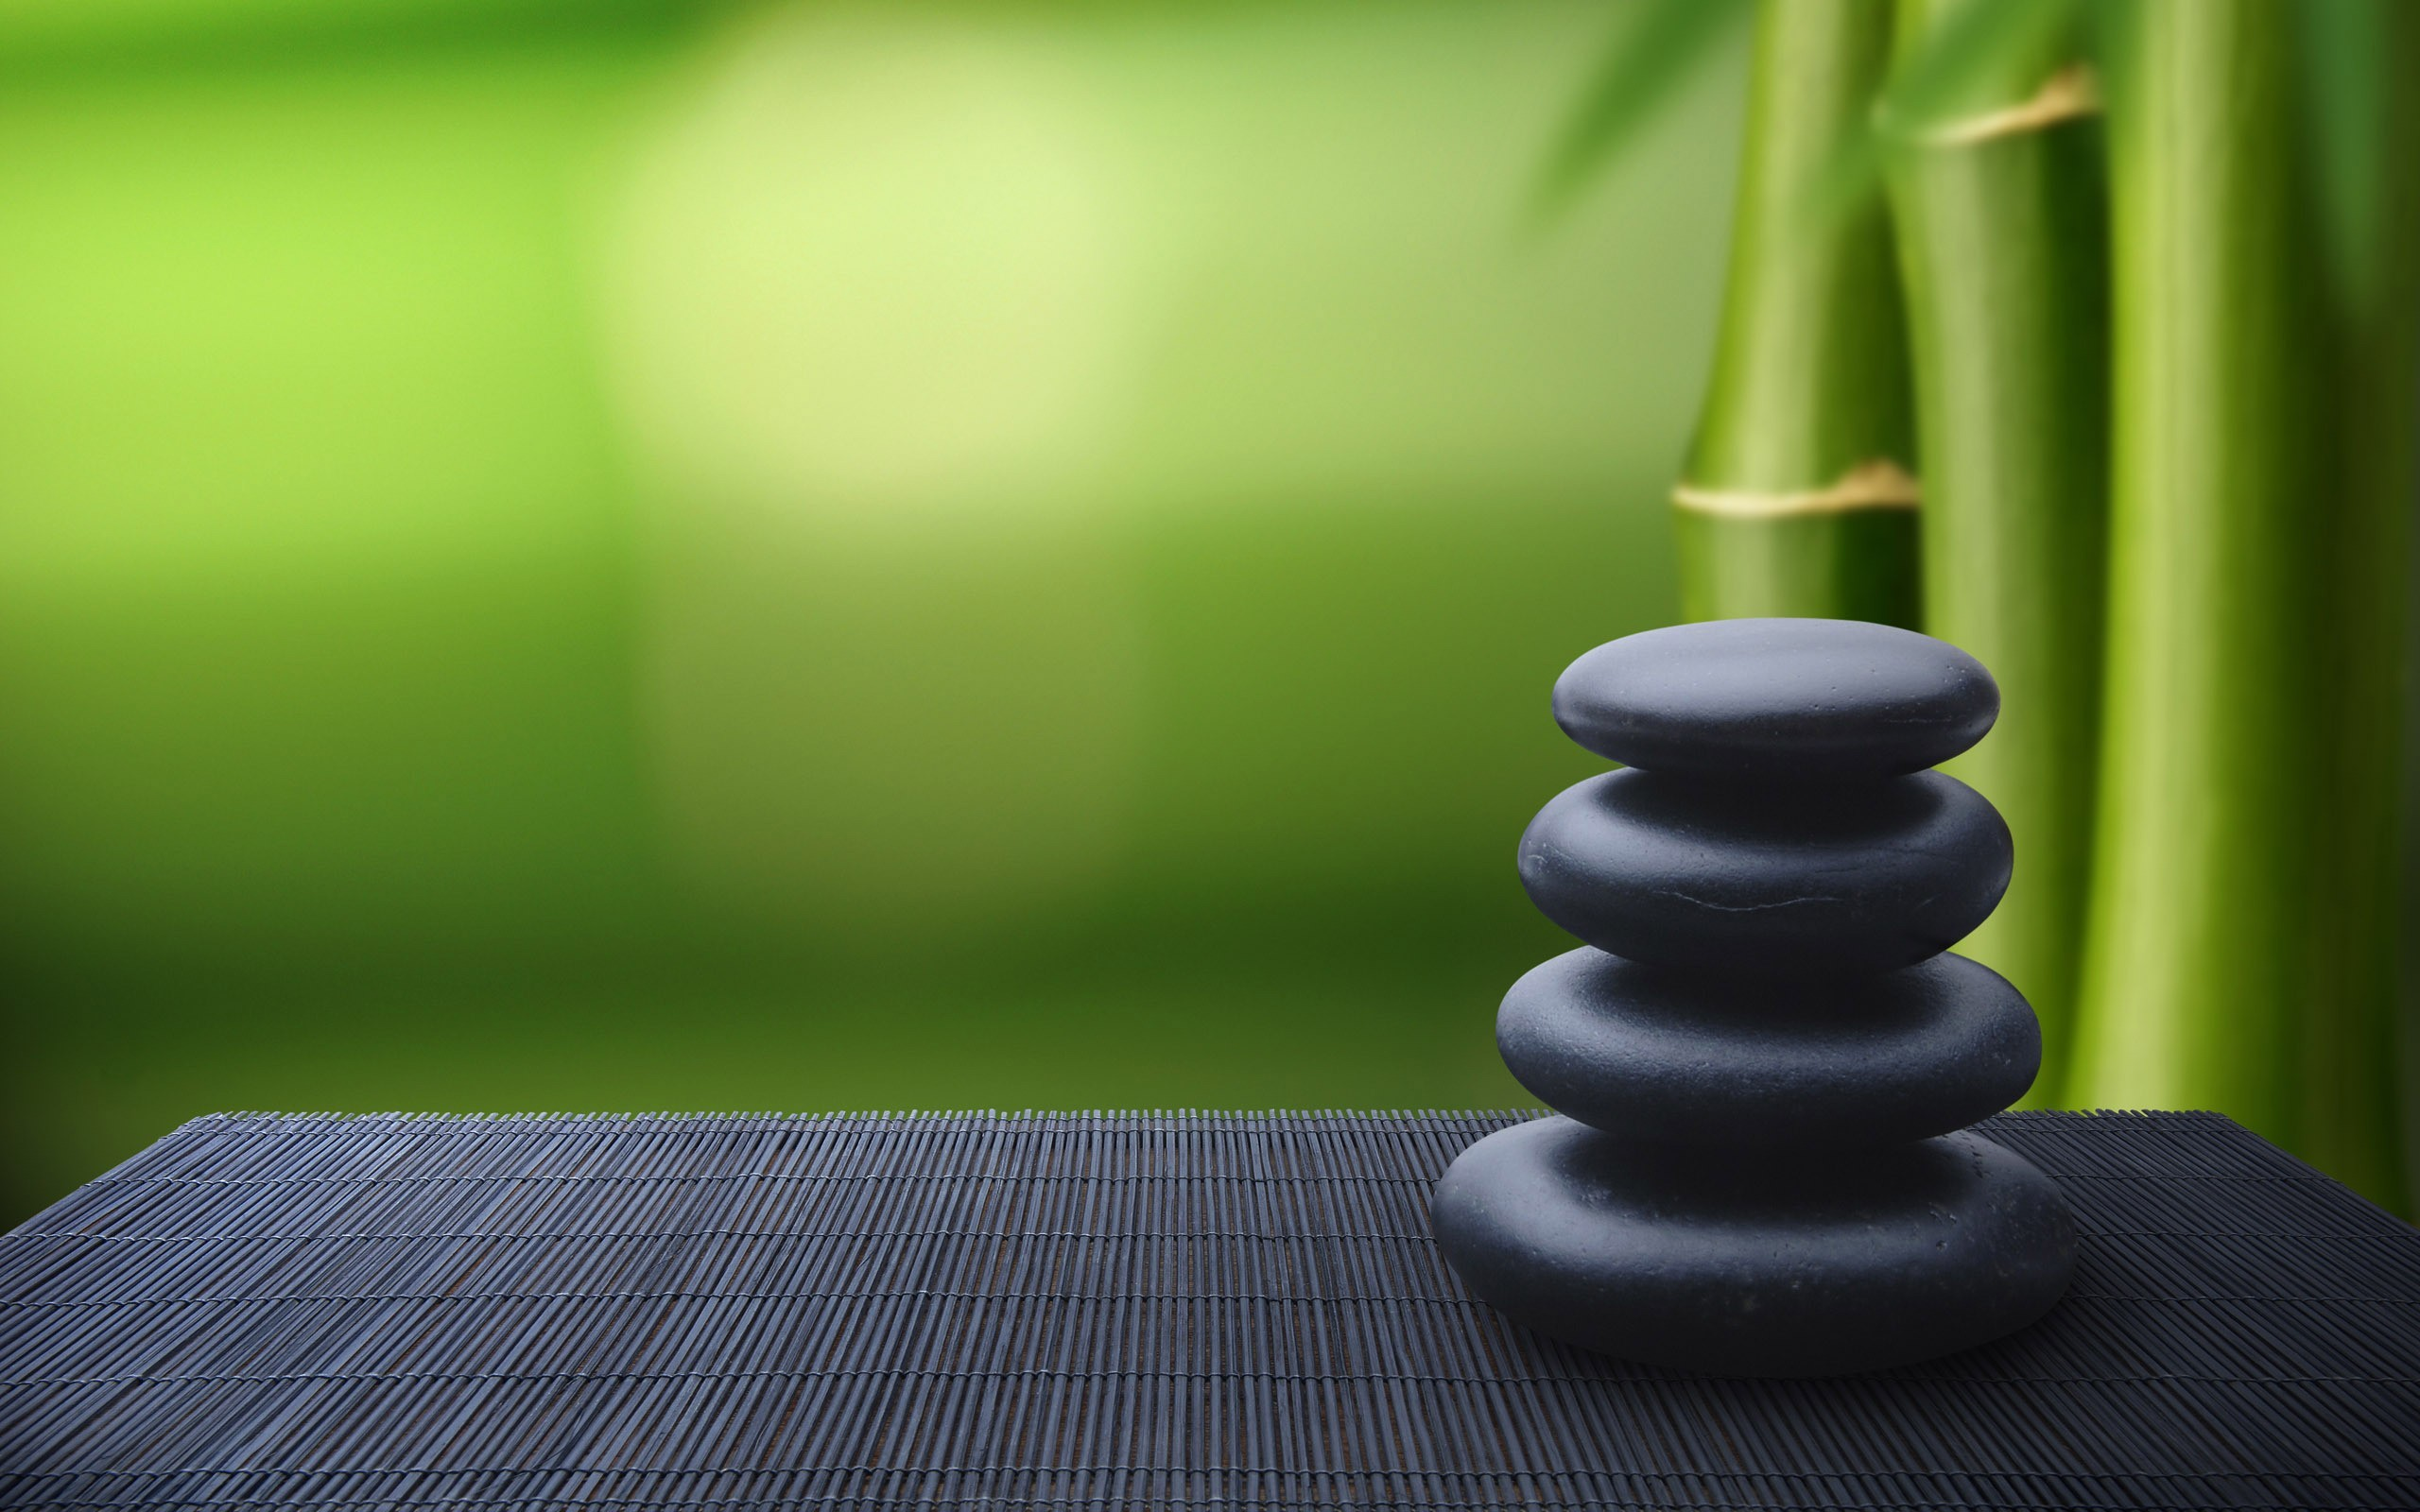 Meditation wallpaper 57 images 2560x1600 bamboo stones zen meditation fresh new hd voltagebd Images